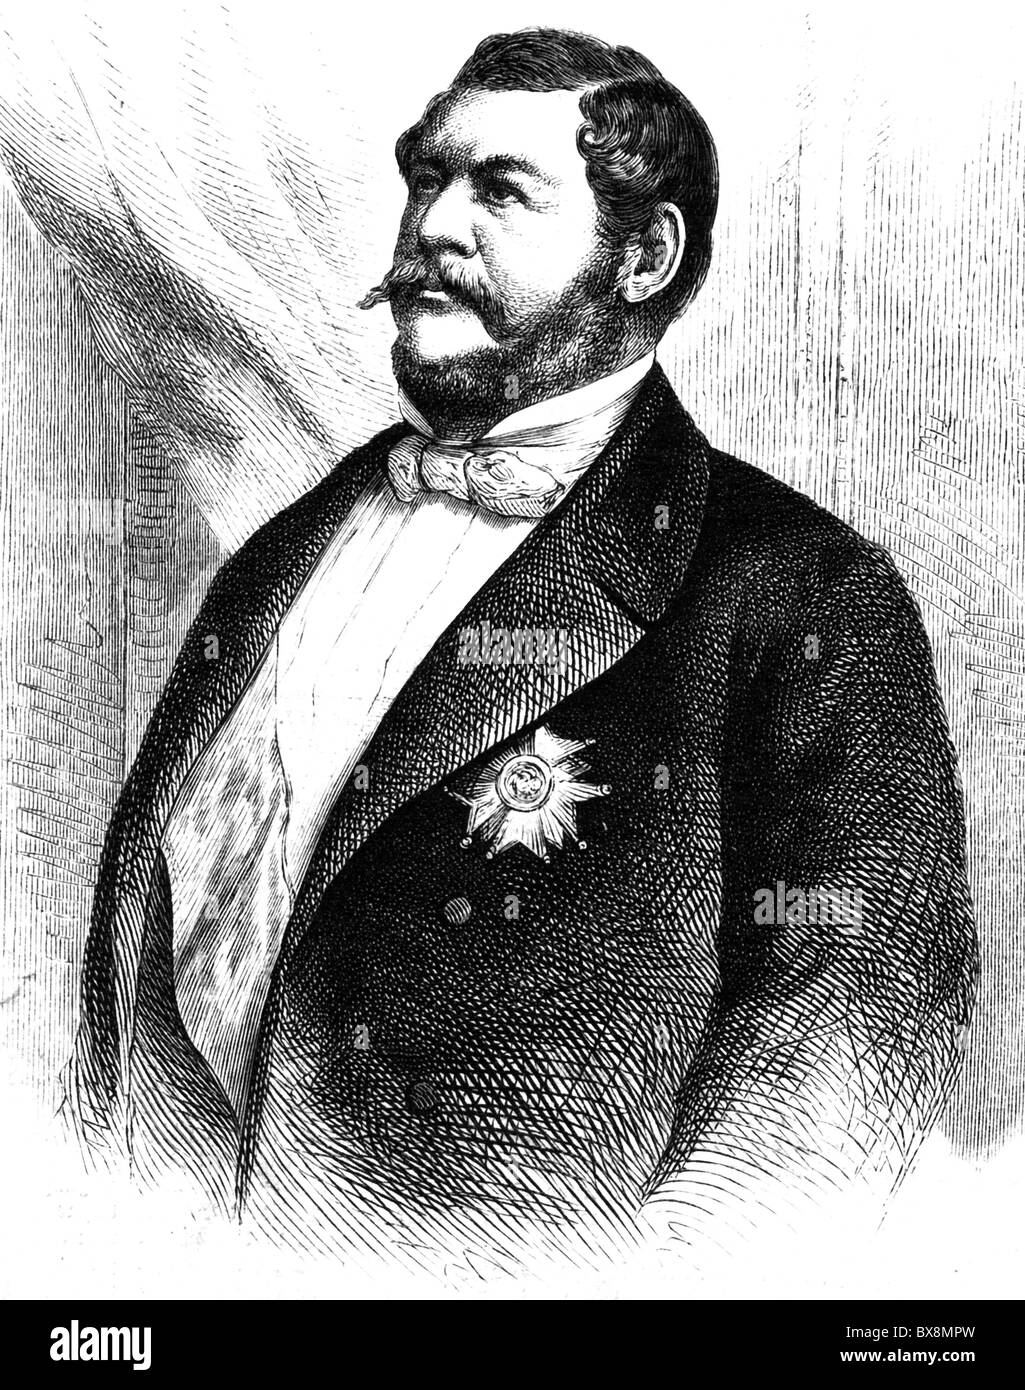 Murat, Lucien, 16.5.1803 - 10.4.1878, French politician, half length, wood engraving after photo, 19th century, - Stock Image